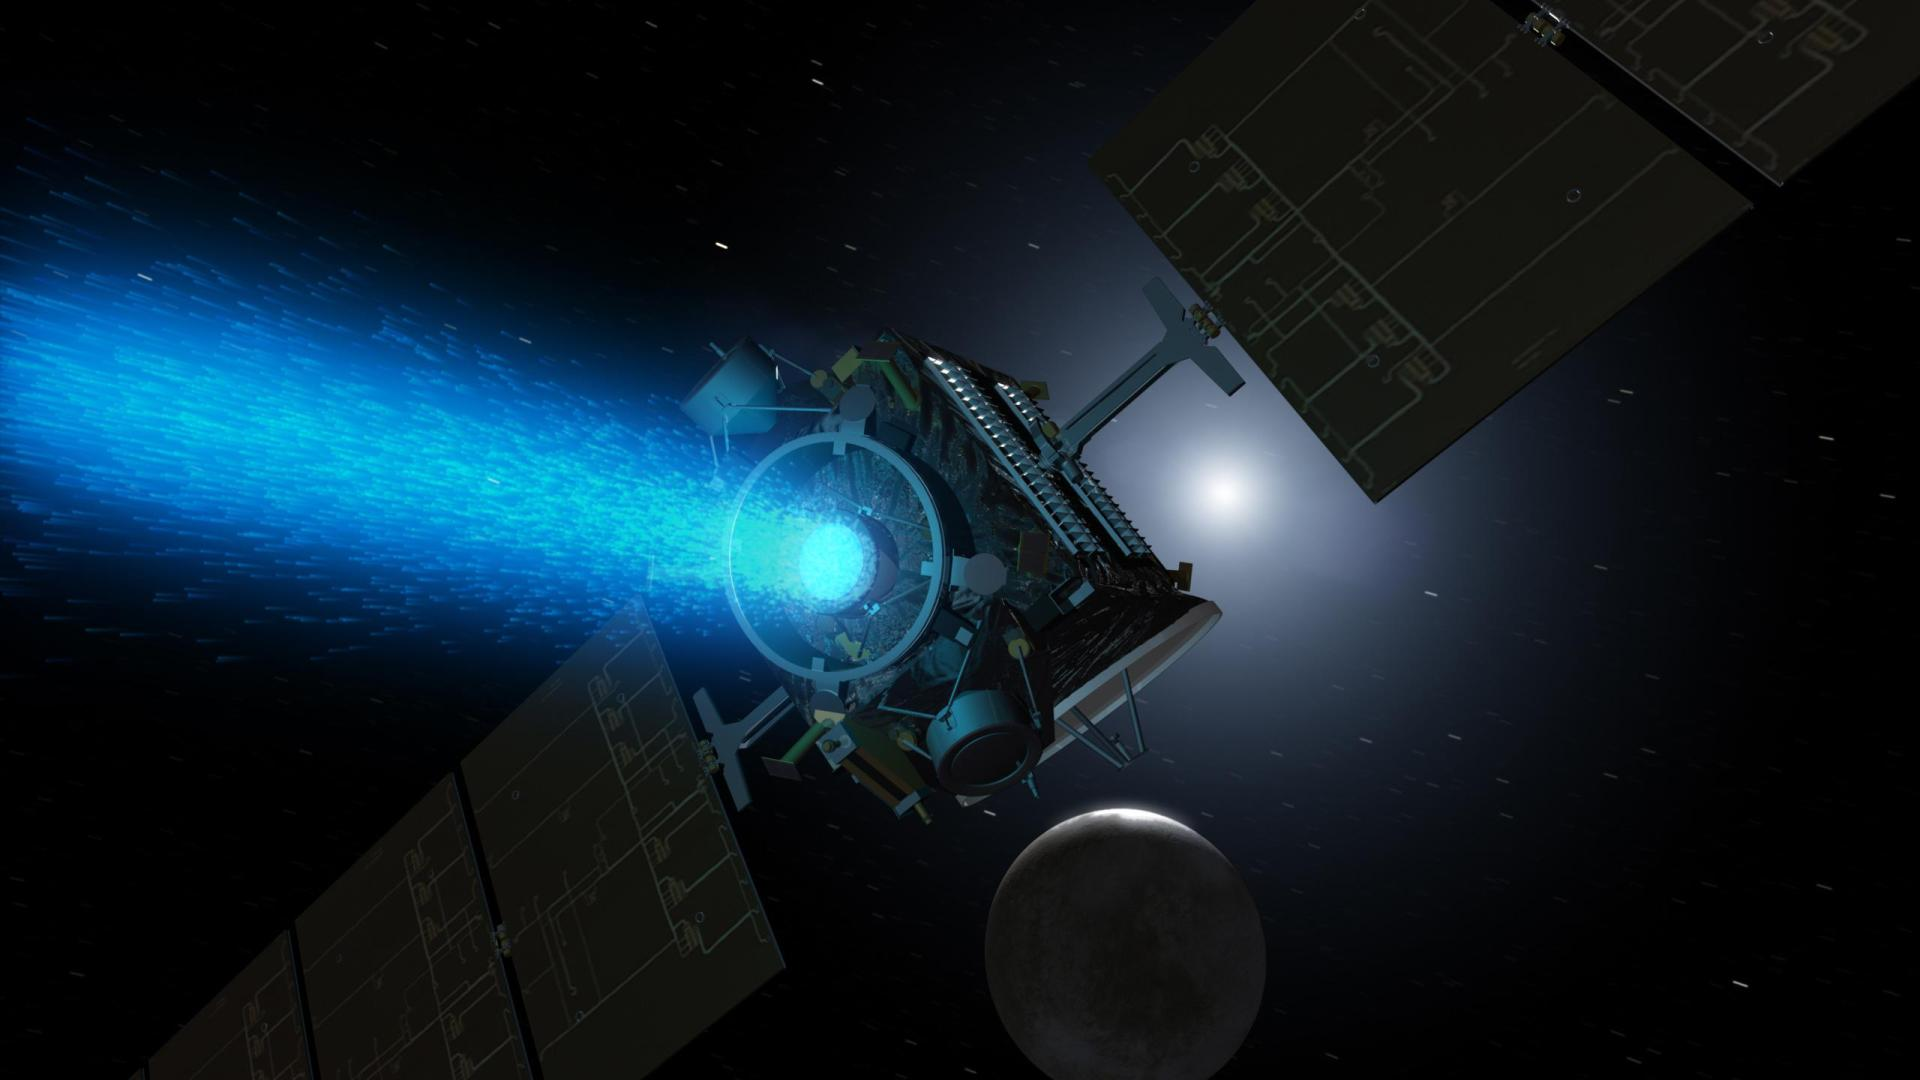 Dawn's ion propulsion system